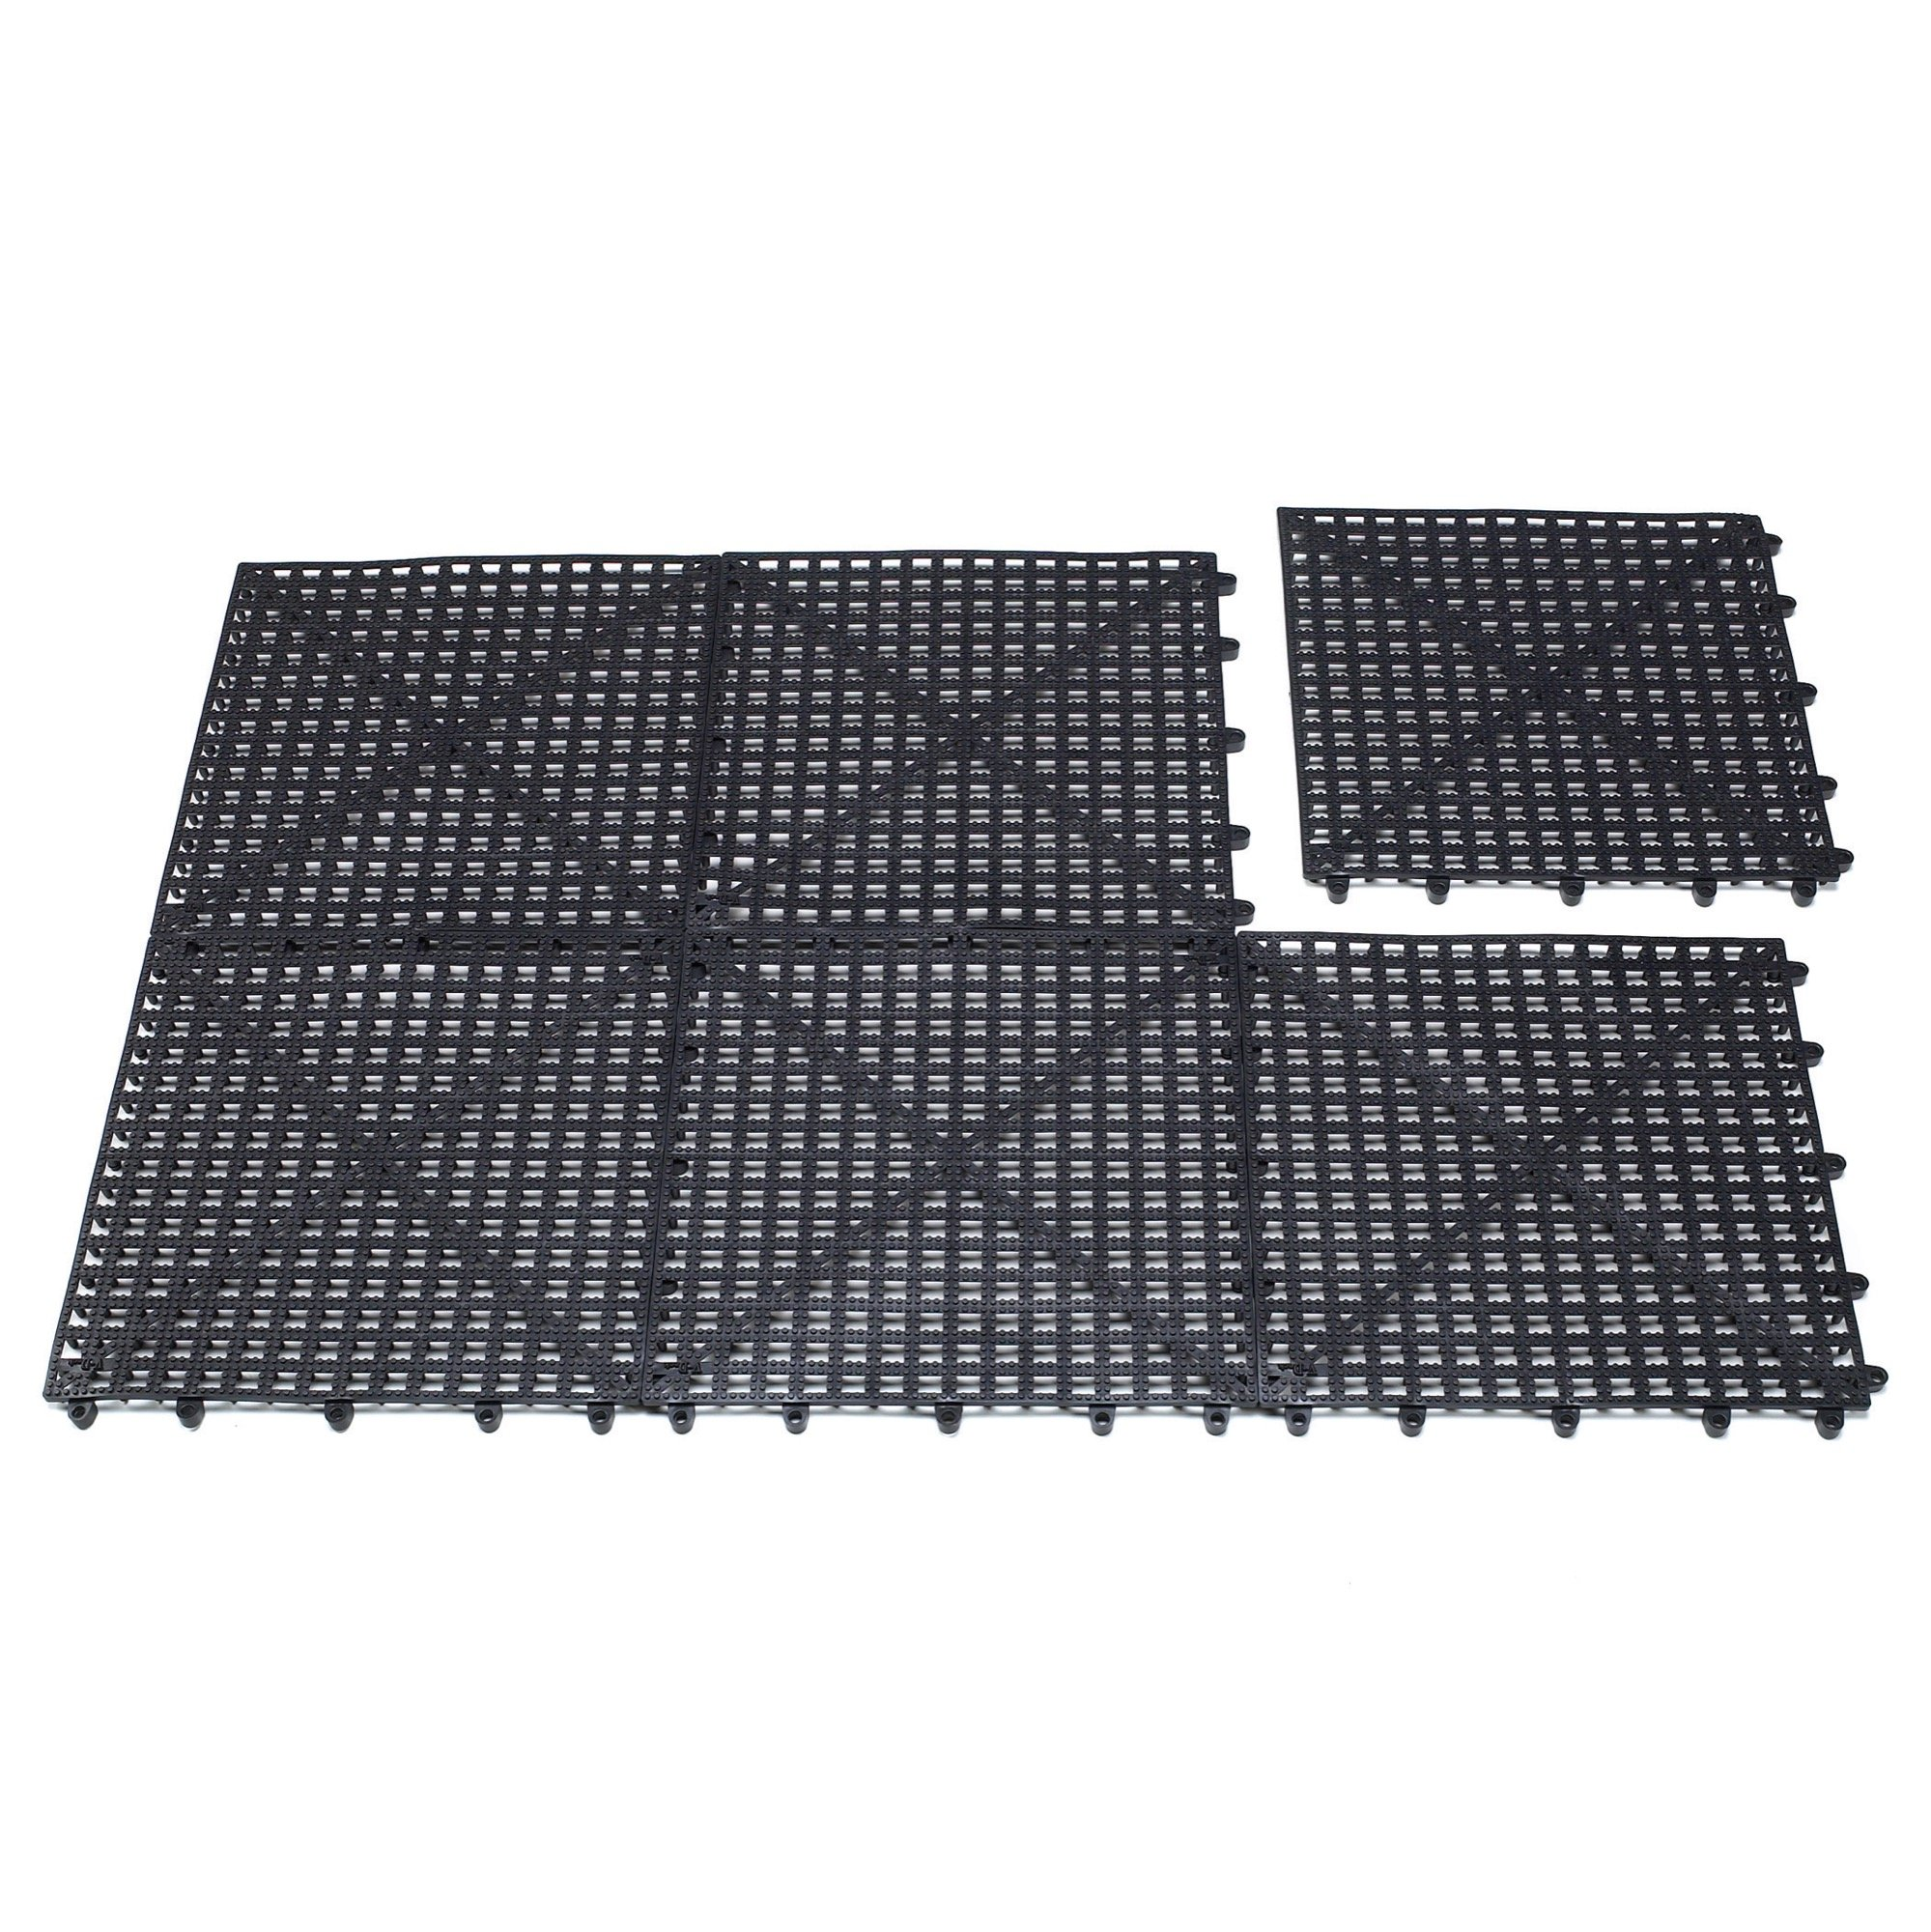 Top Performance  Floor Tiles for Groomers - Padded, Cushioned Floor Tiles  Provide Unmatched Comfort and Traction for Professional Pet Groomers Throughout Their Workday, Black